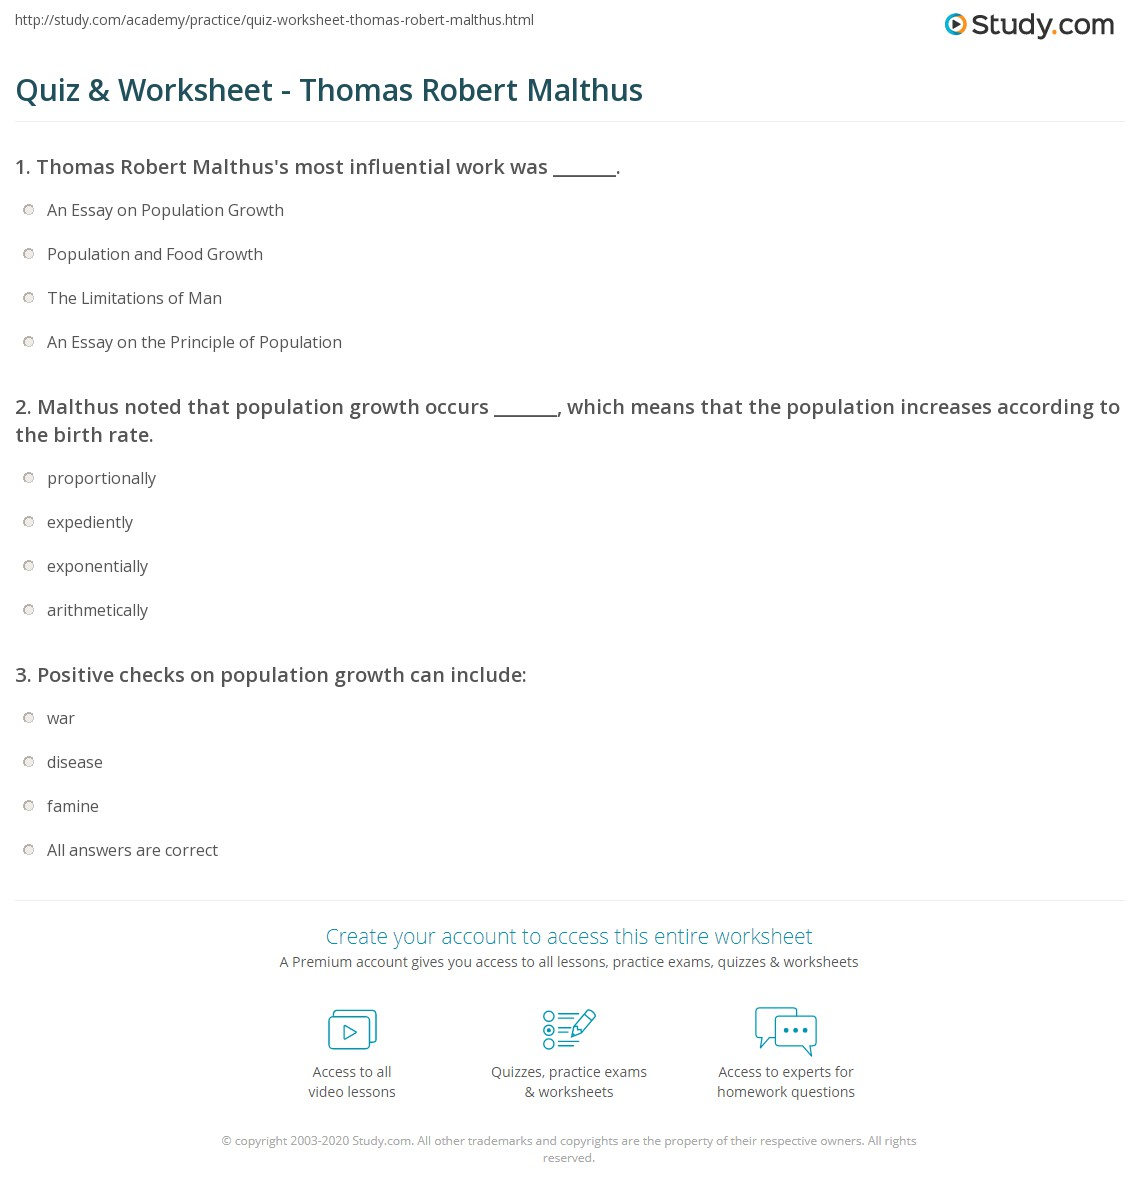 quiz worksheet thomas robert malthus com malthus noted that population growth occurs which means that the population increases according to the birth rate